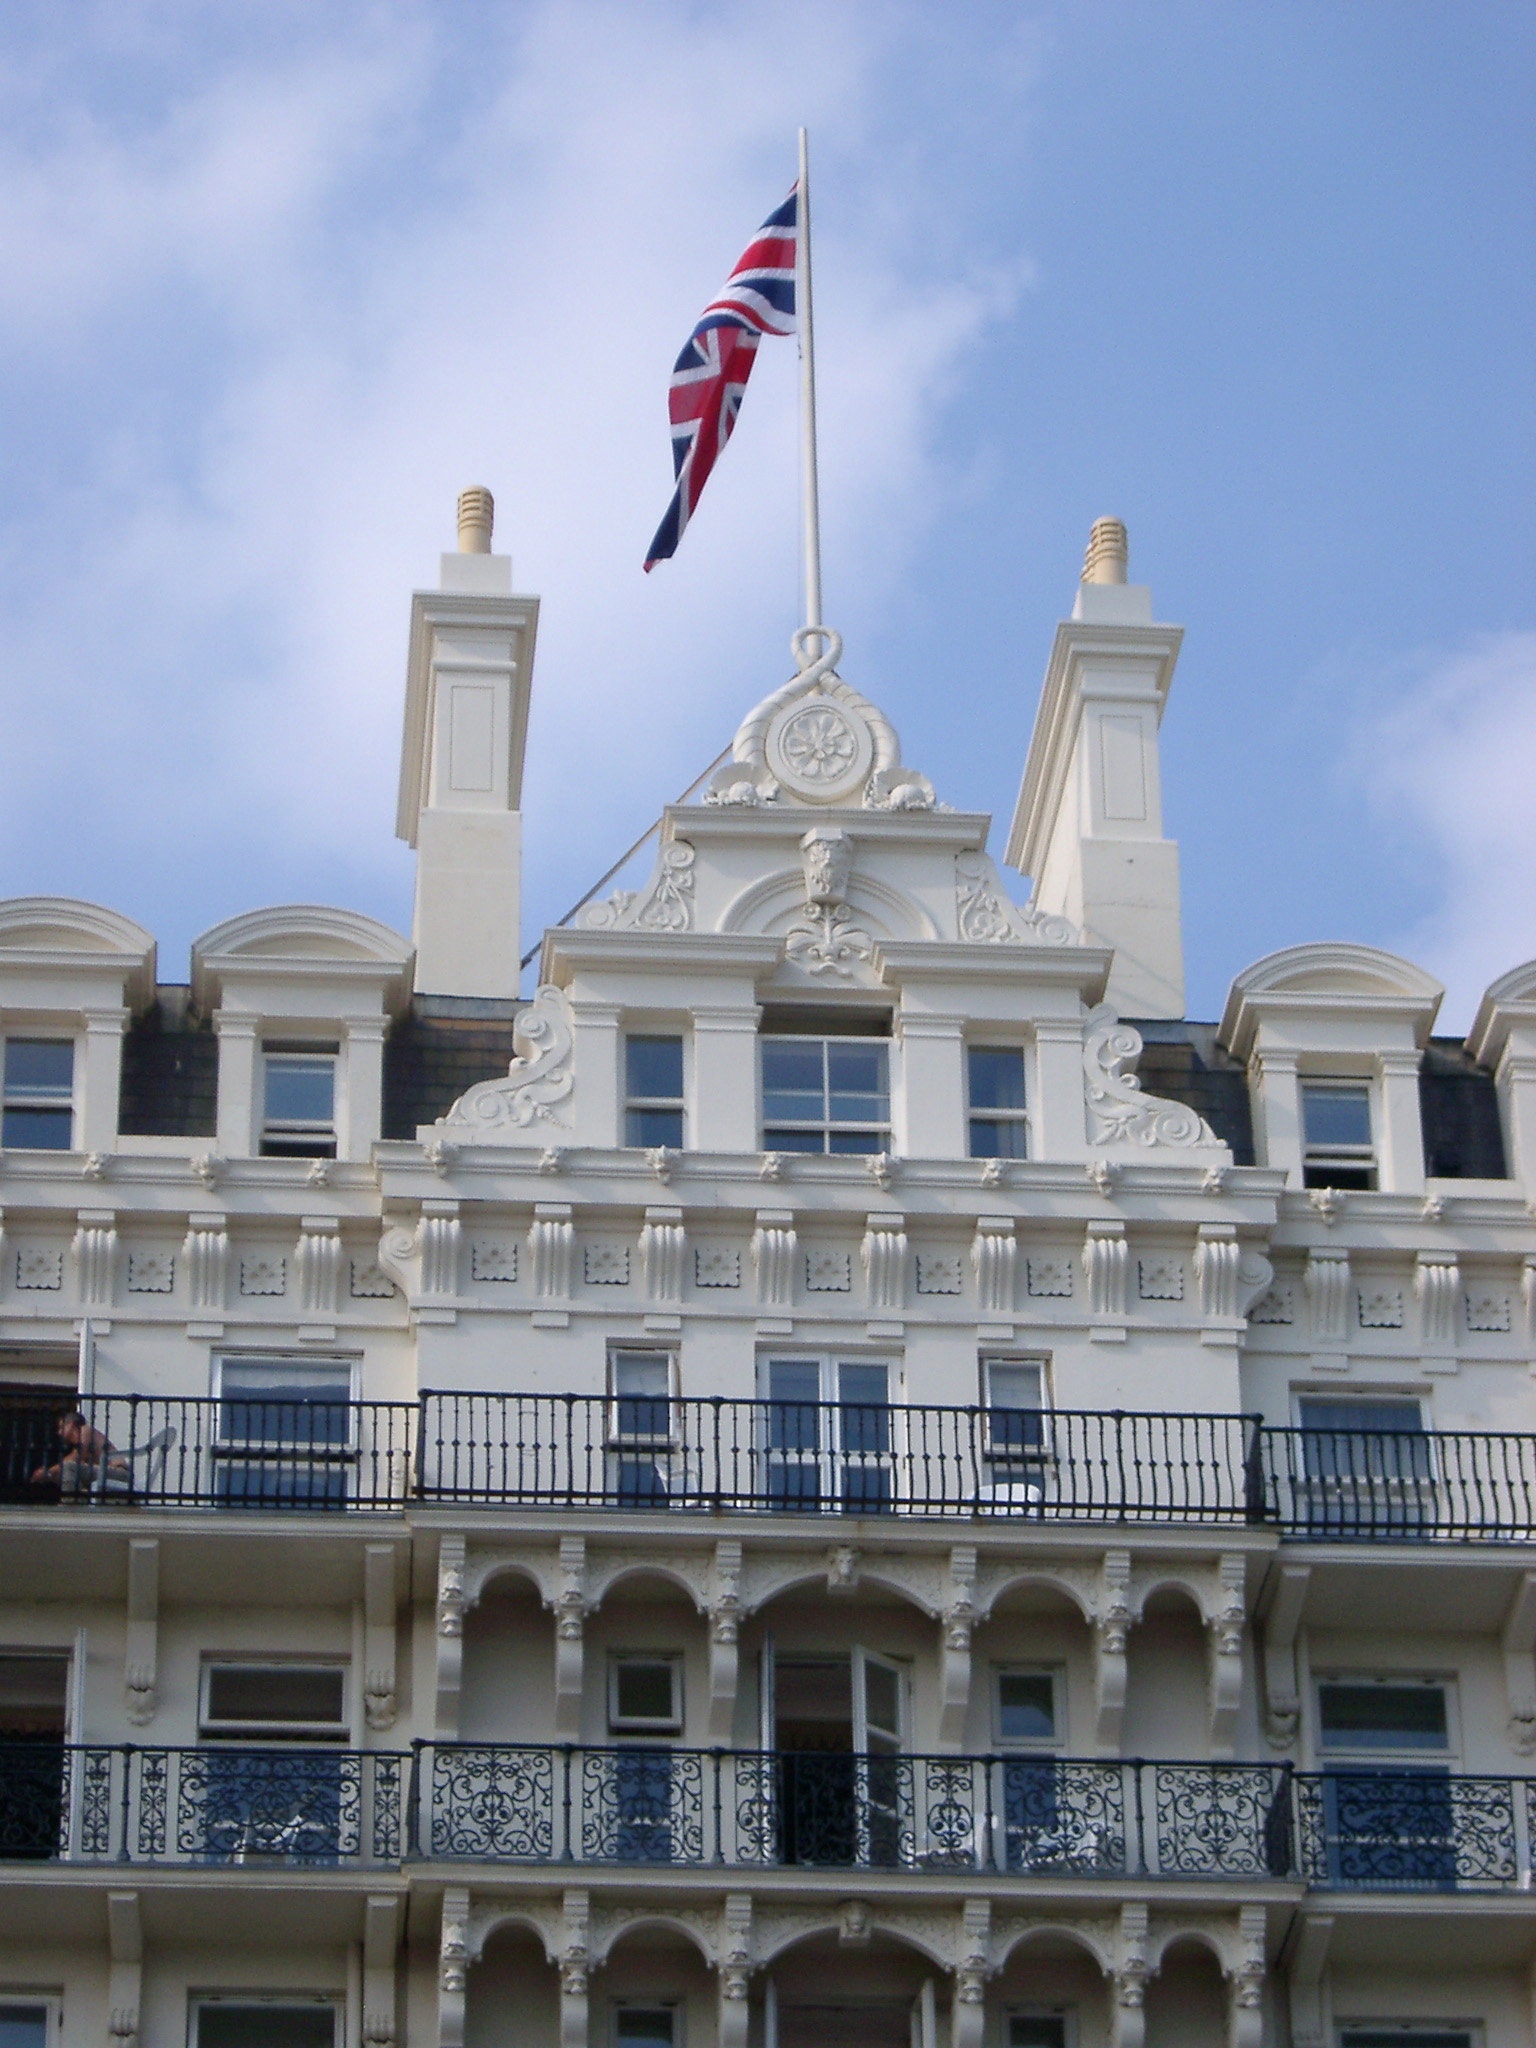 Close Up of Union Jack Flag on Top of Grand Hotel, Brighton, England